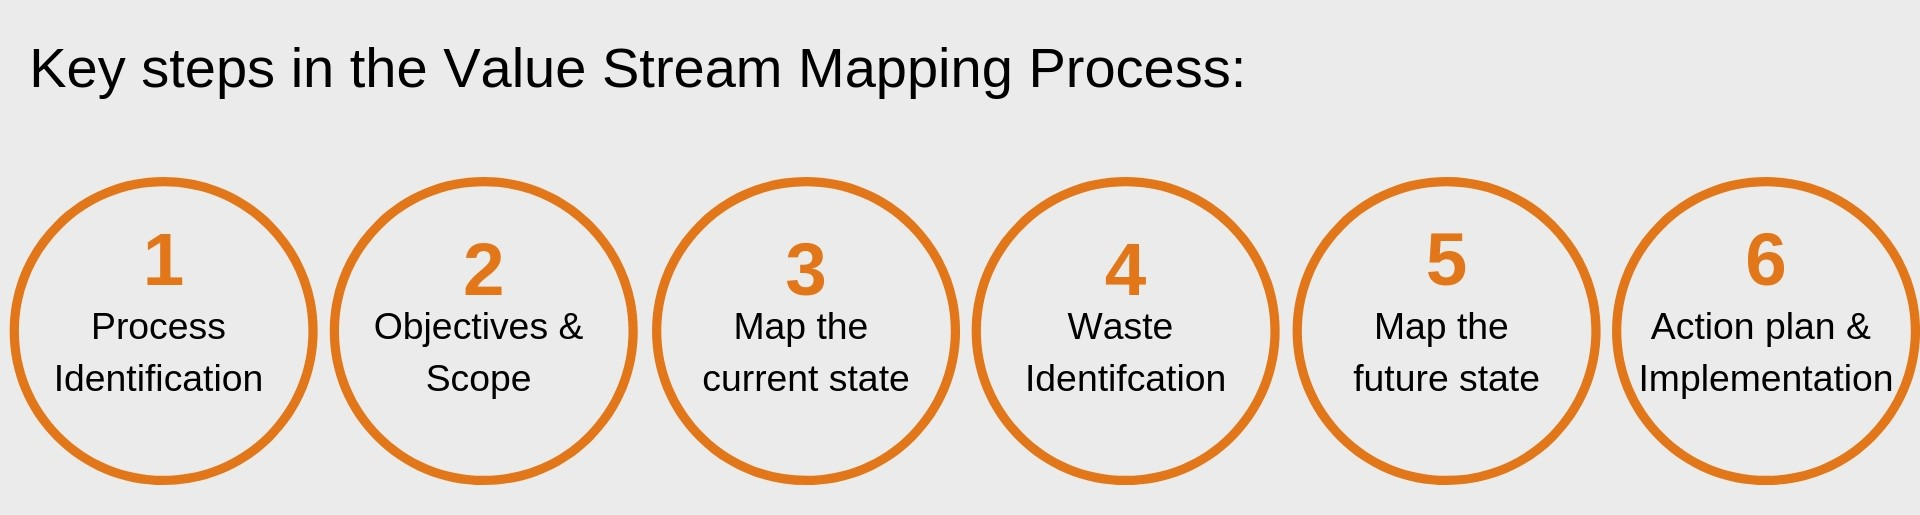 Value-Stream-Mapping-Process-mango